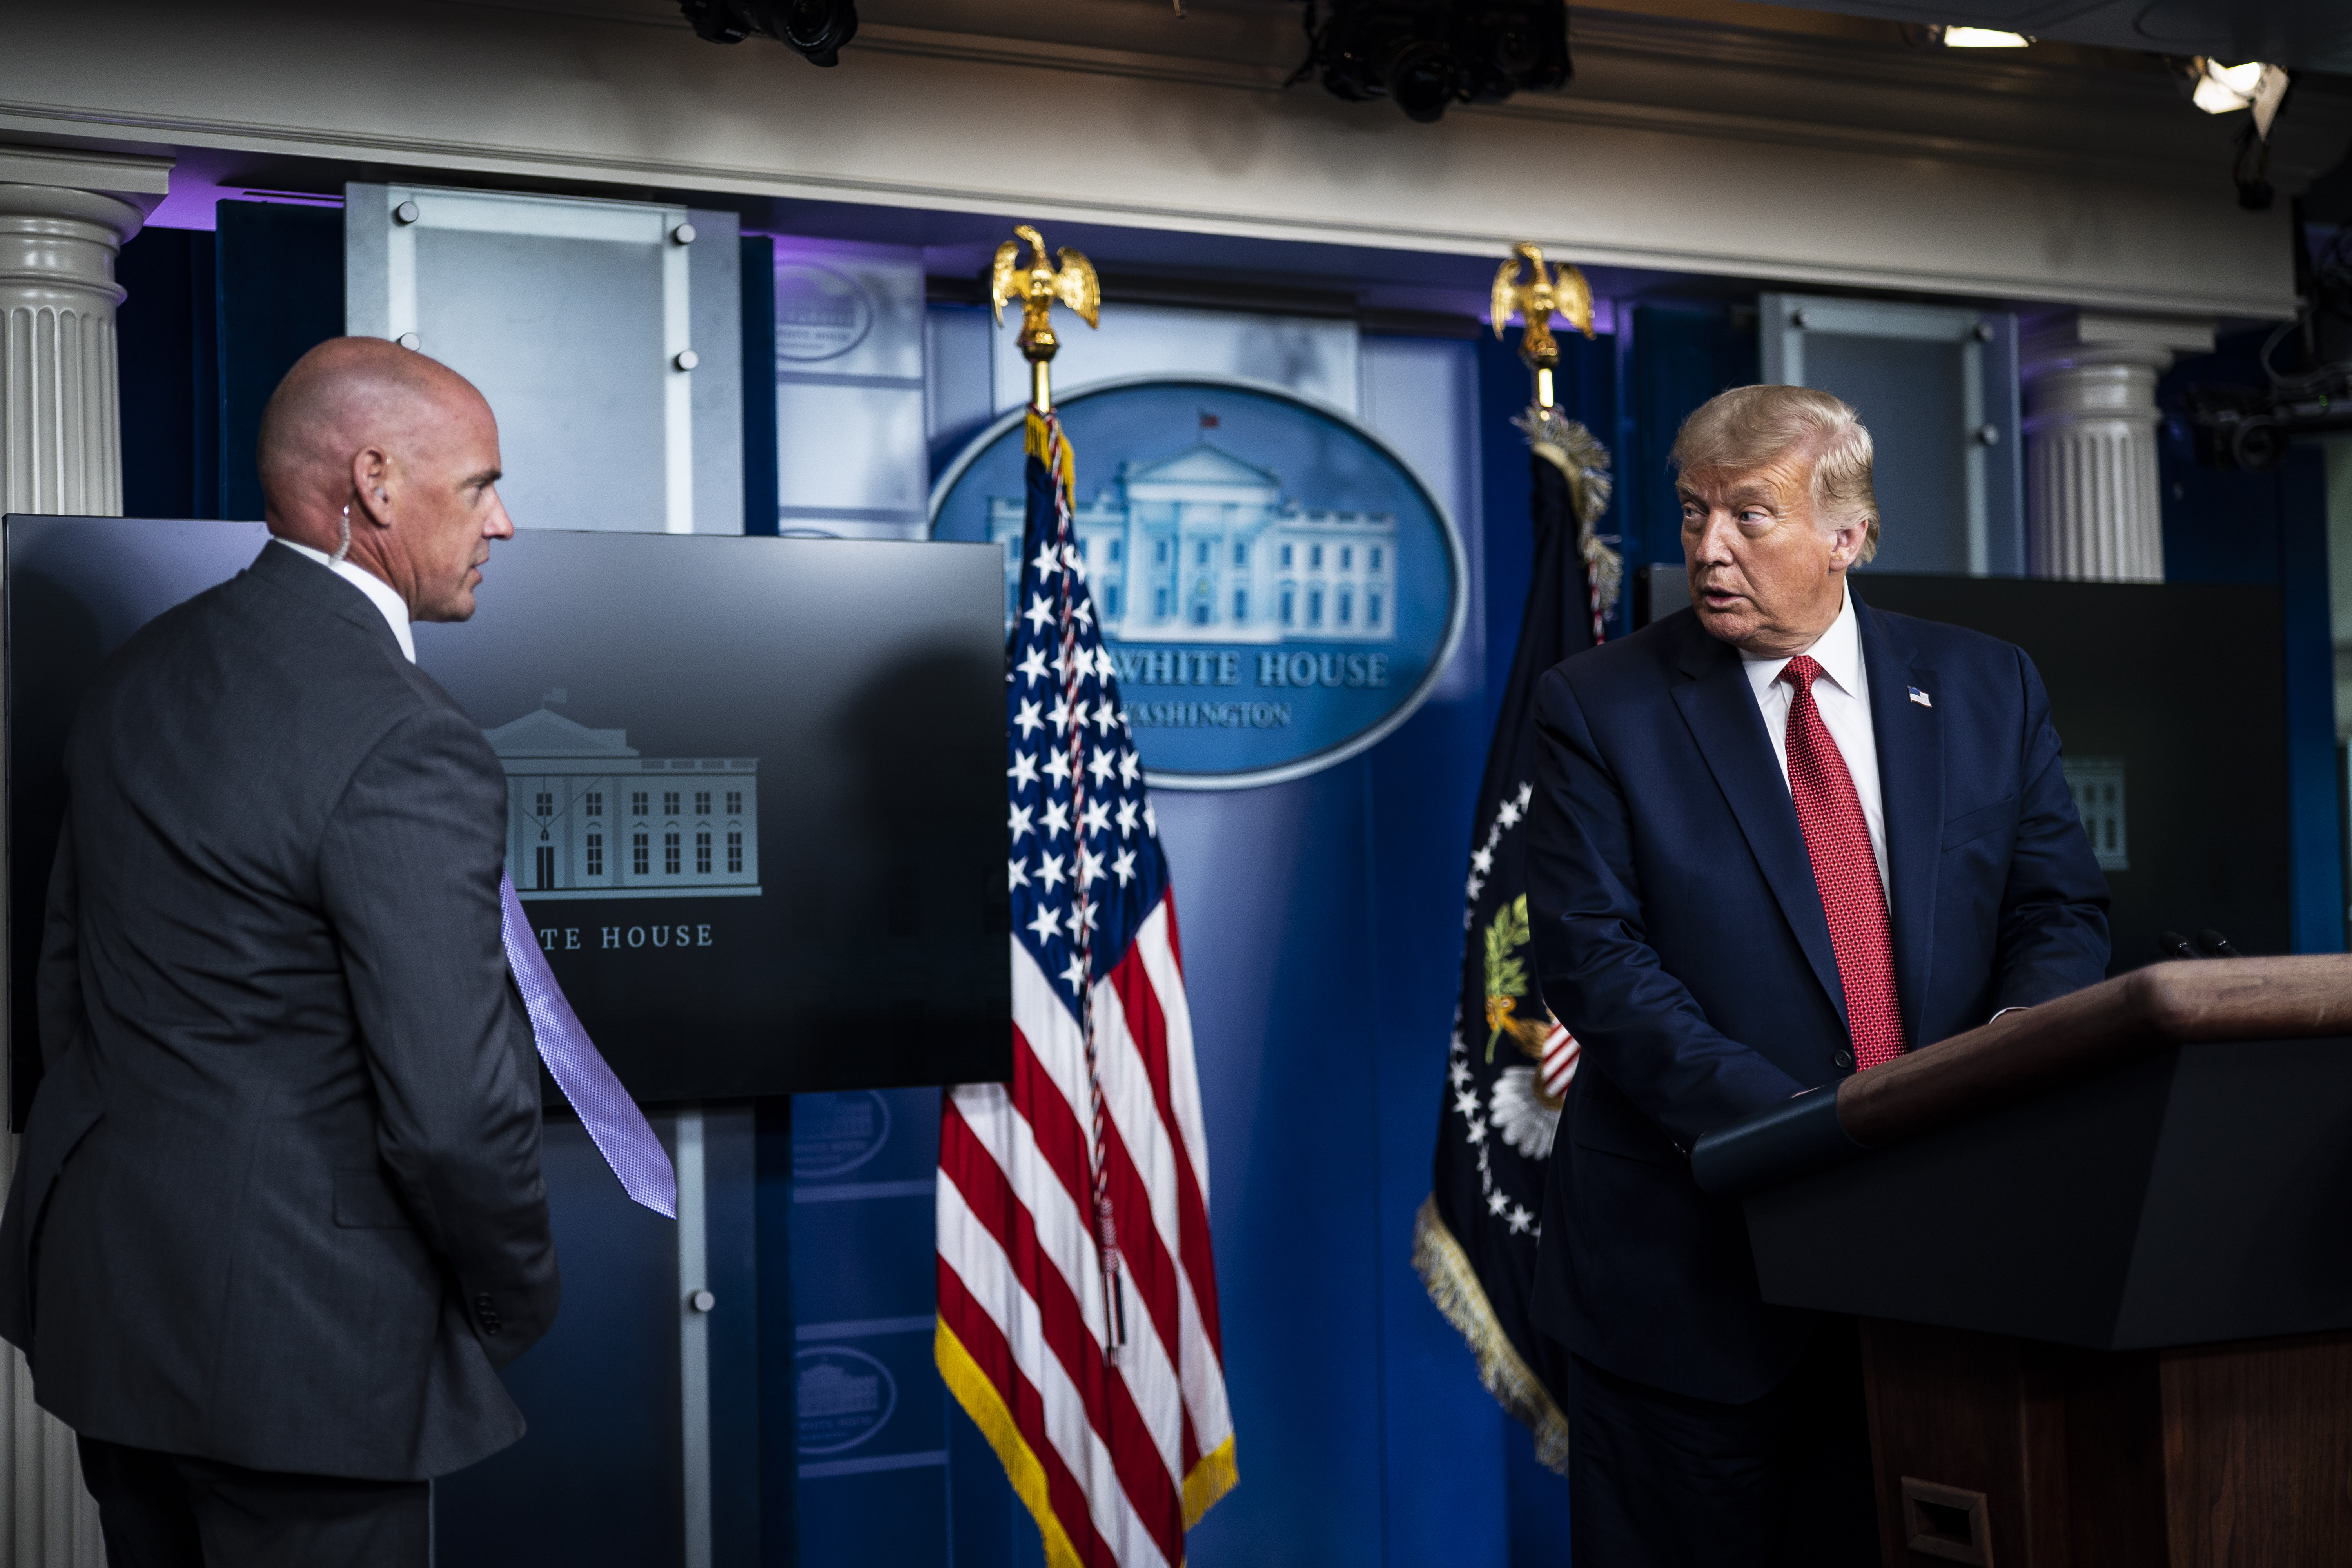 WASHINGTON, DC - AUGUST 10: A member of the United States Secret Service asks President Donald J. Trump to follow him as he speaks moment after a shooting outside the White House during a COVID-19 coronavirus briefing in the James S. Brady Briefing Room at the White House at the White House on Monday, Aug 10, 2020 in Washington, DC. (Photo by Jabin Botsford/The Washington Post via Getty Images)